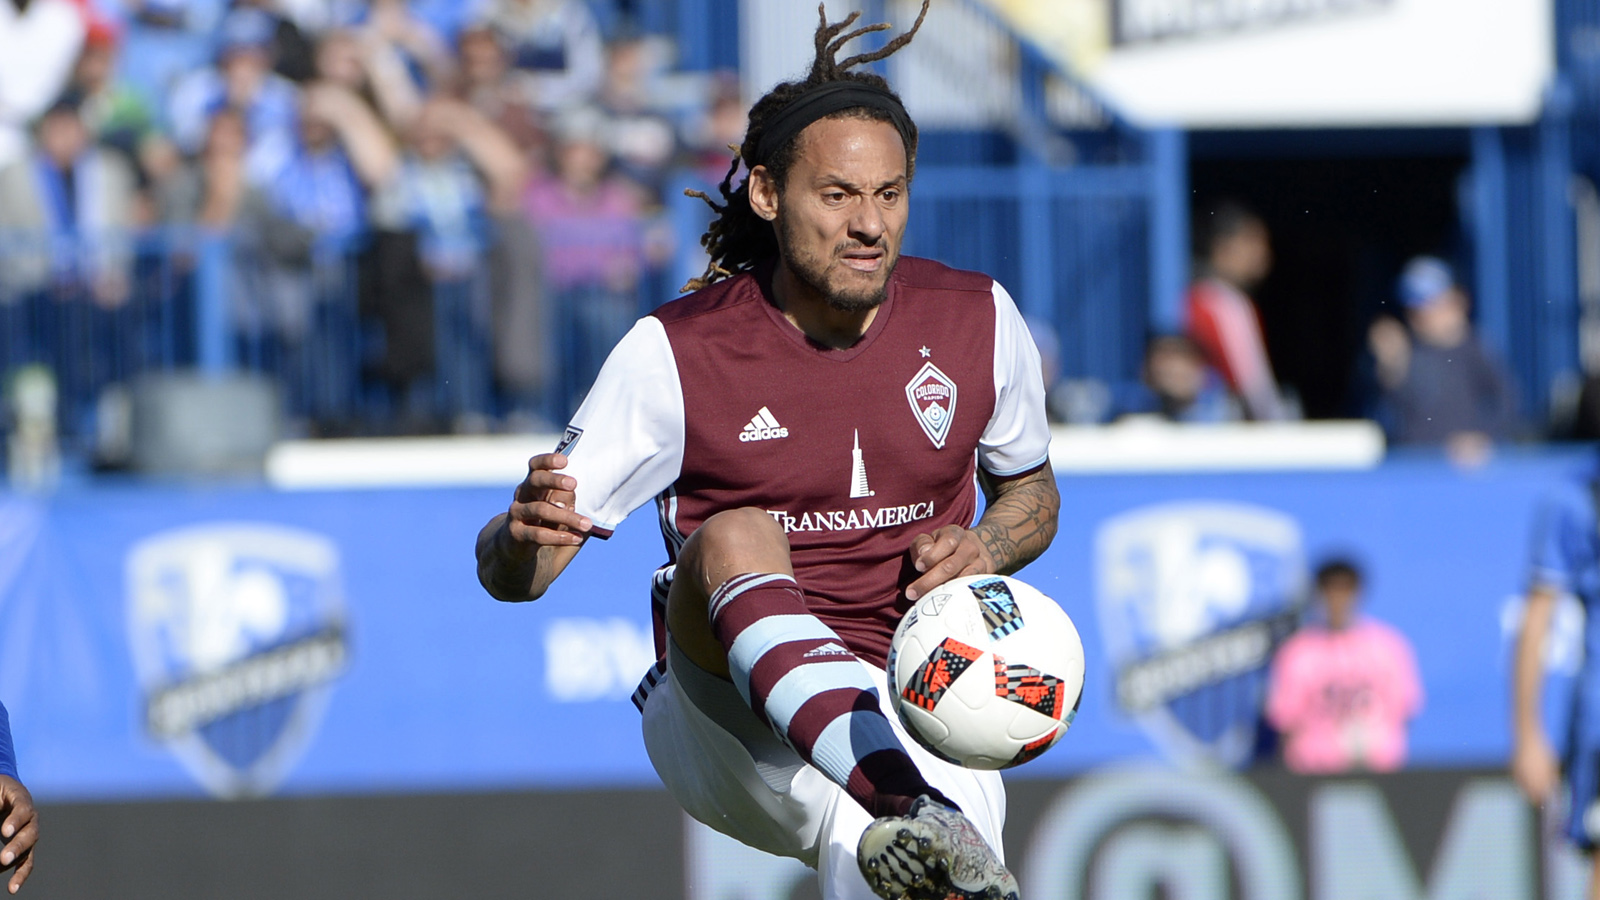 The Colorado Rapids' dominant regular season style backfired in playoffs